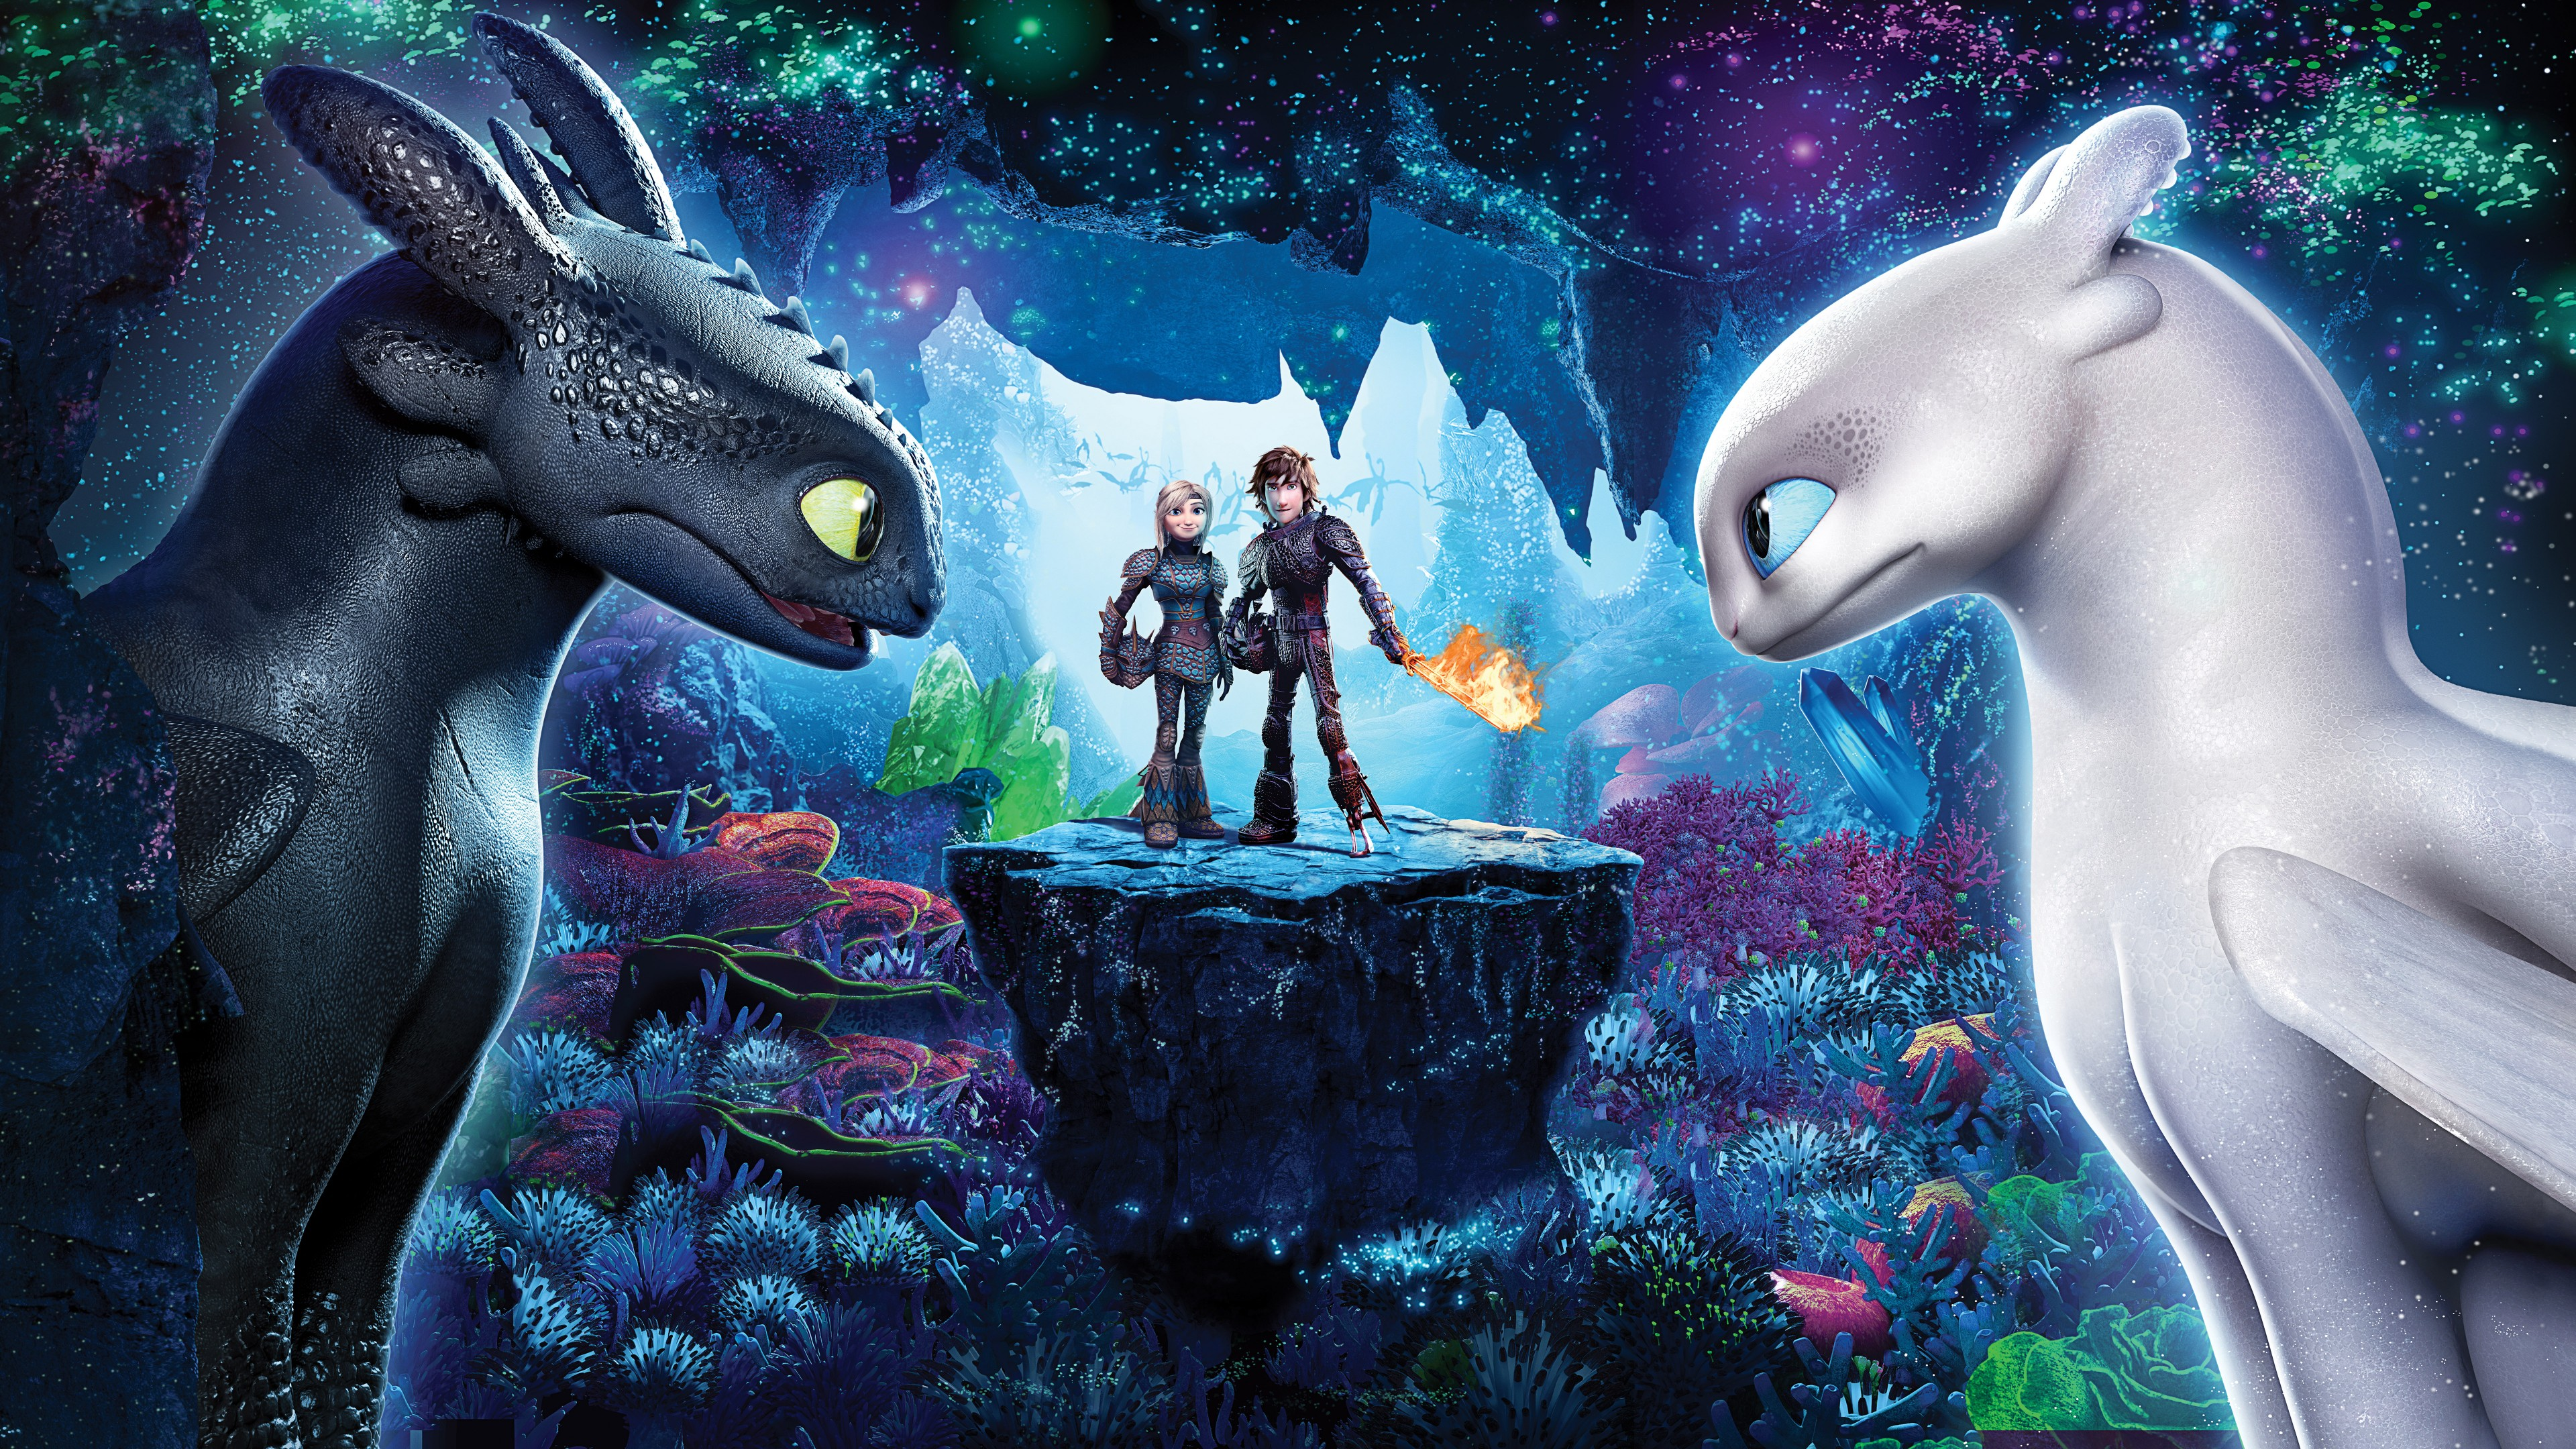 3d Wallpaper For Ipad Pro How To Train Your Dragon 3 The Hidden World 4k 8k